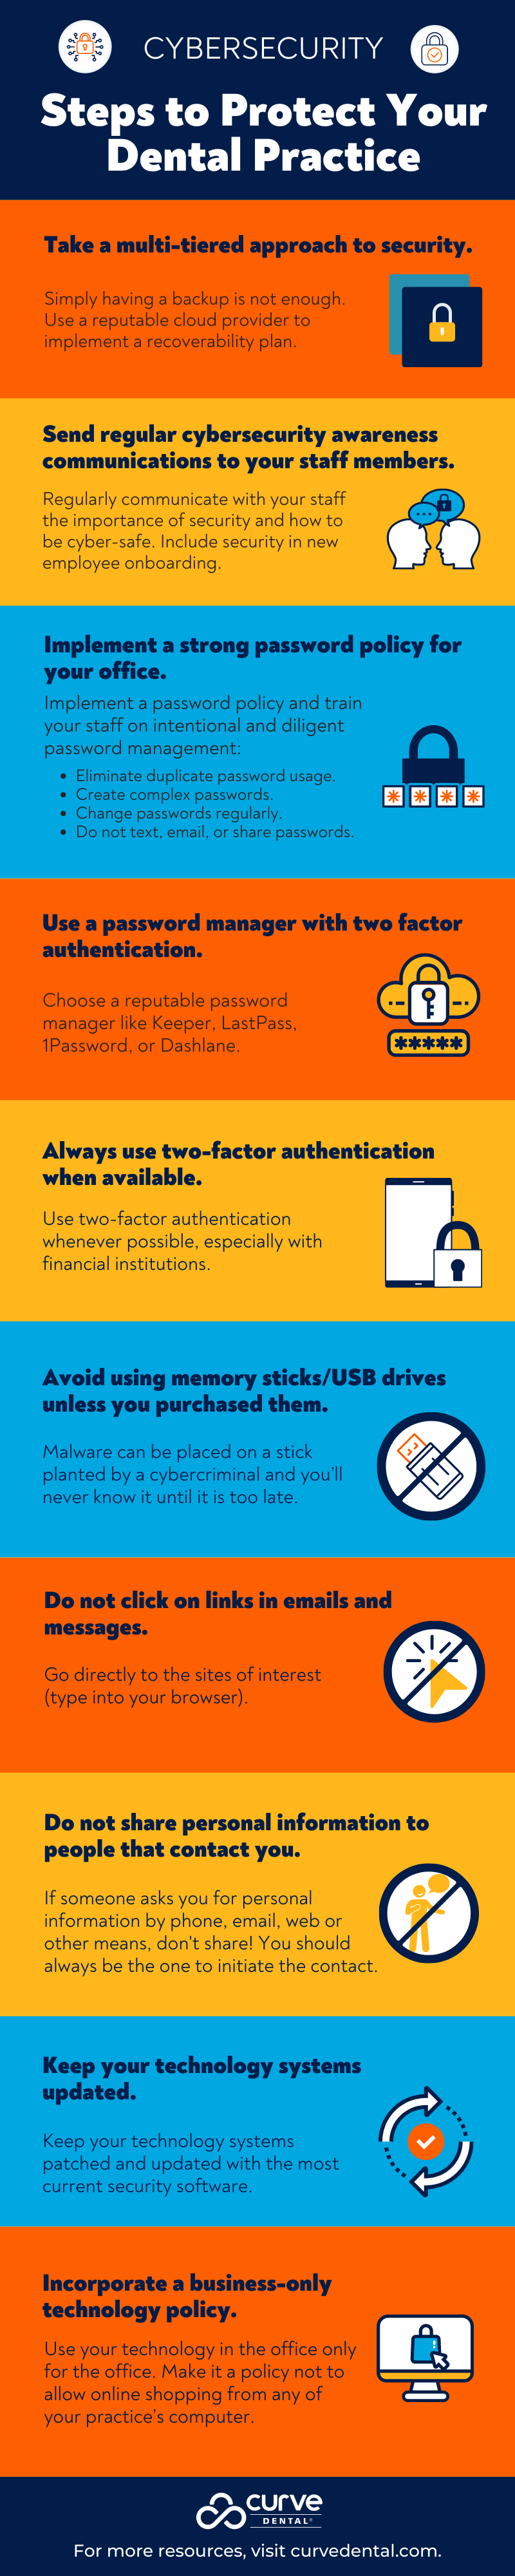 INFOGRAPHIC Cybersecurity - Steps to Protect Your Dental Practice